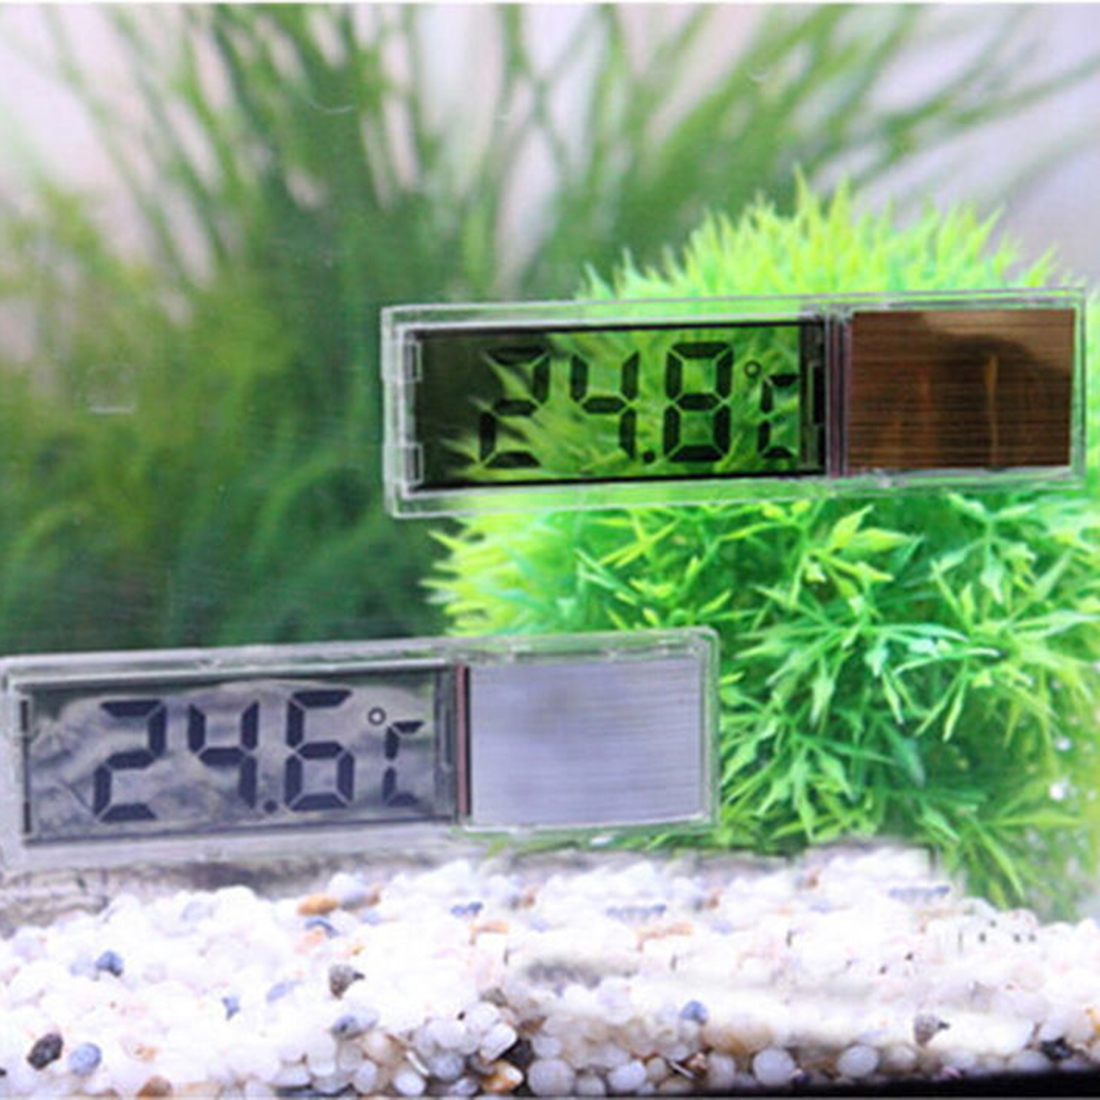 HOt Multi-Function Lcd 3D Crystal Digital Electronic Temperature Measurement Fish Tank Aquarium Thermometer Random Color